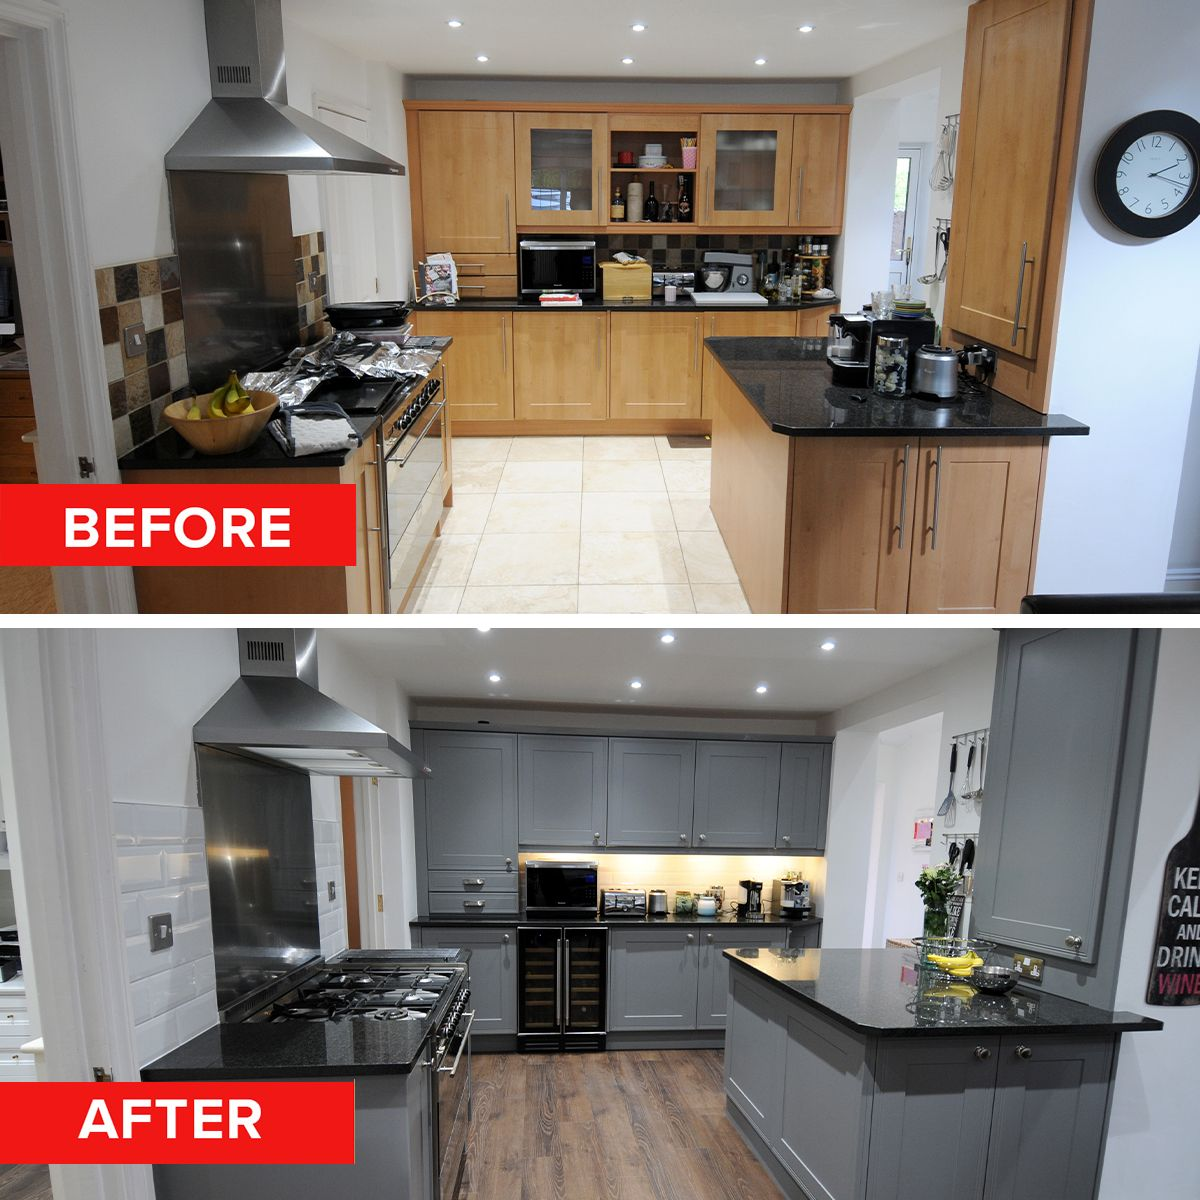 Modernise Your Kitchen With A Dream Doors Transformation Whethe In 2020 Replacement Kitchen Cupboard Doors Replacement Kitchen Doors Replacement Kitchen Cabinet Doors